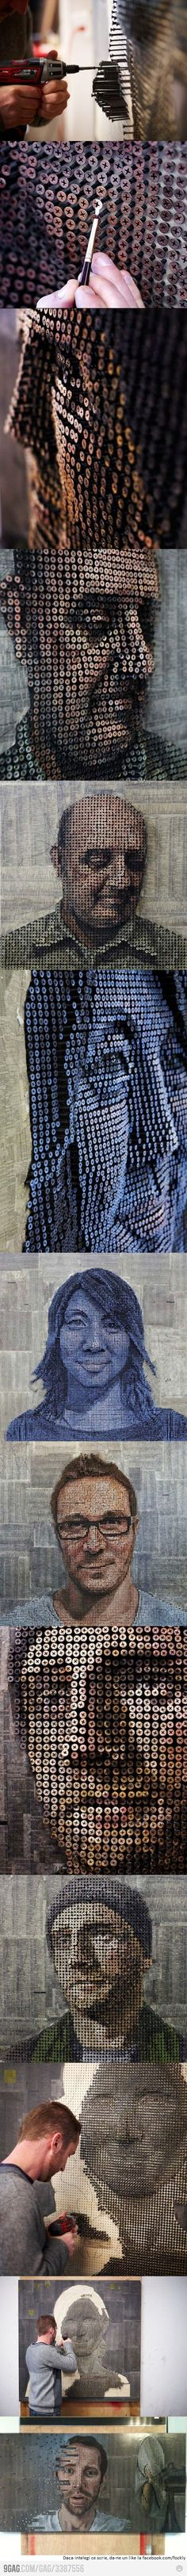 3D portraits made of screws by Andrew Myers. Amazing! 3d portrait, andrew myer, nail arts, nails, artist, sculptur, screw art, portraits, amaz 3d